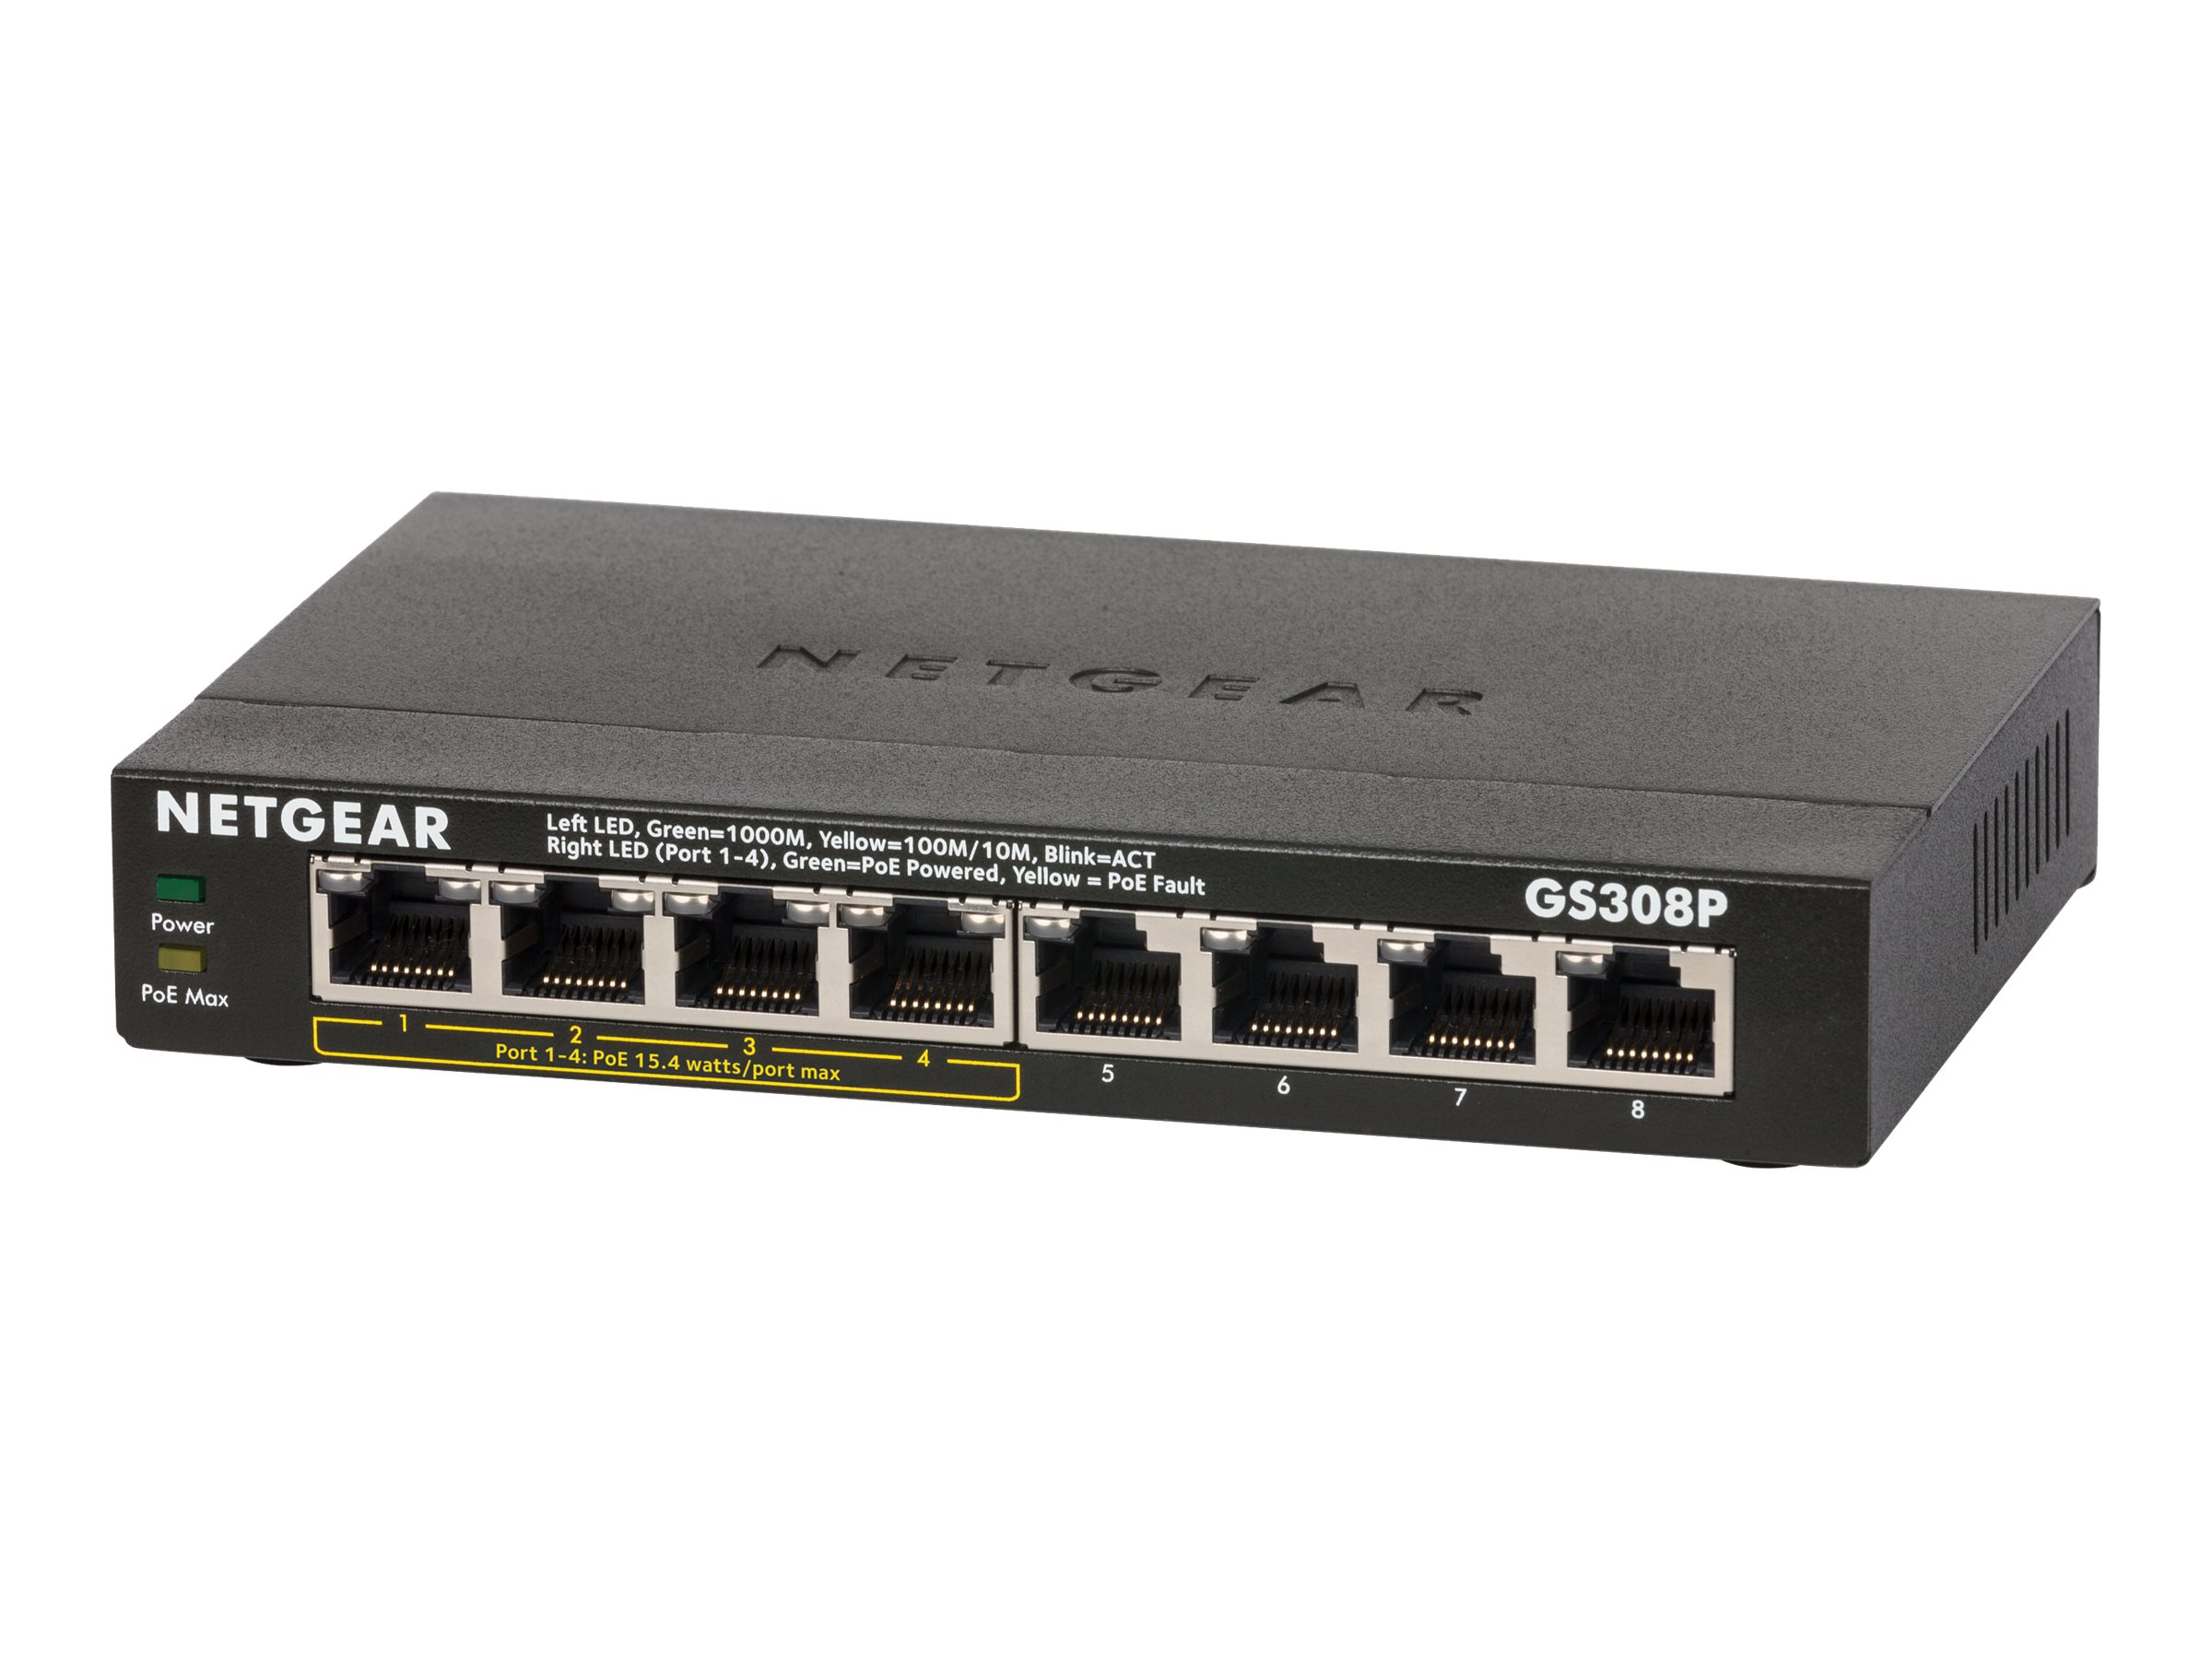 NETGEAR SOHO Gigabit Ethernet Switch GS308P - switch - 8 ports - unmanaged